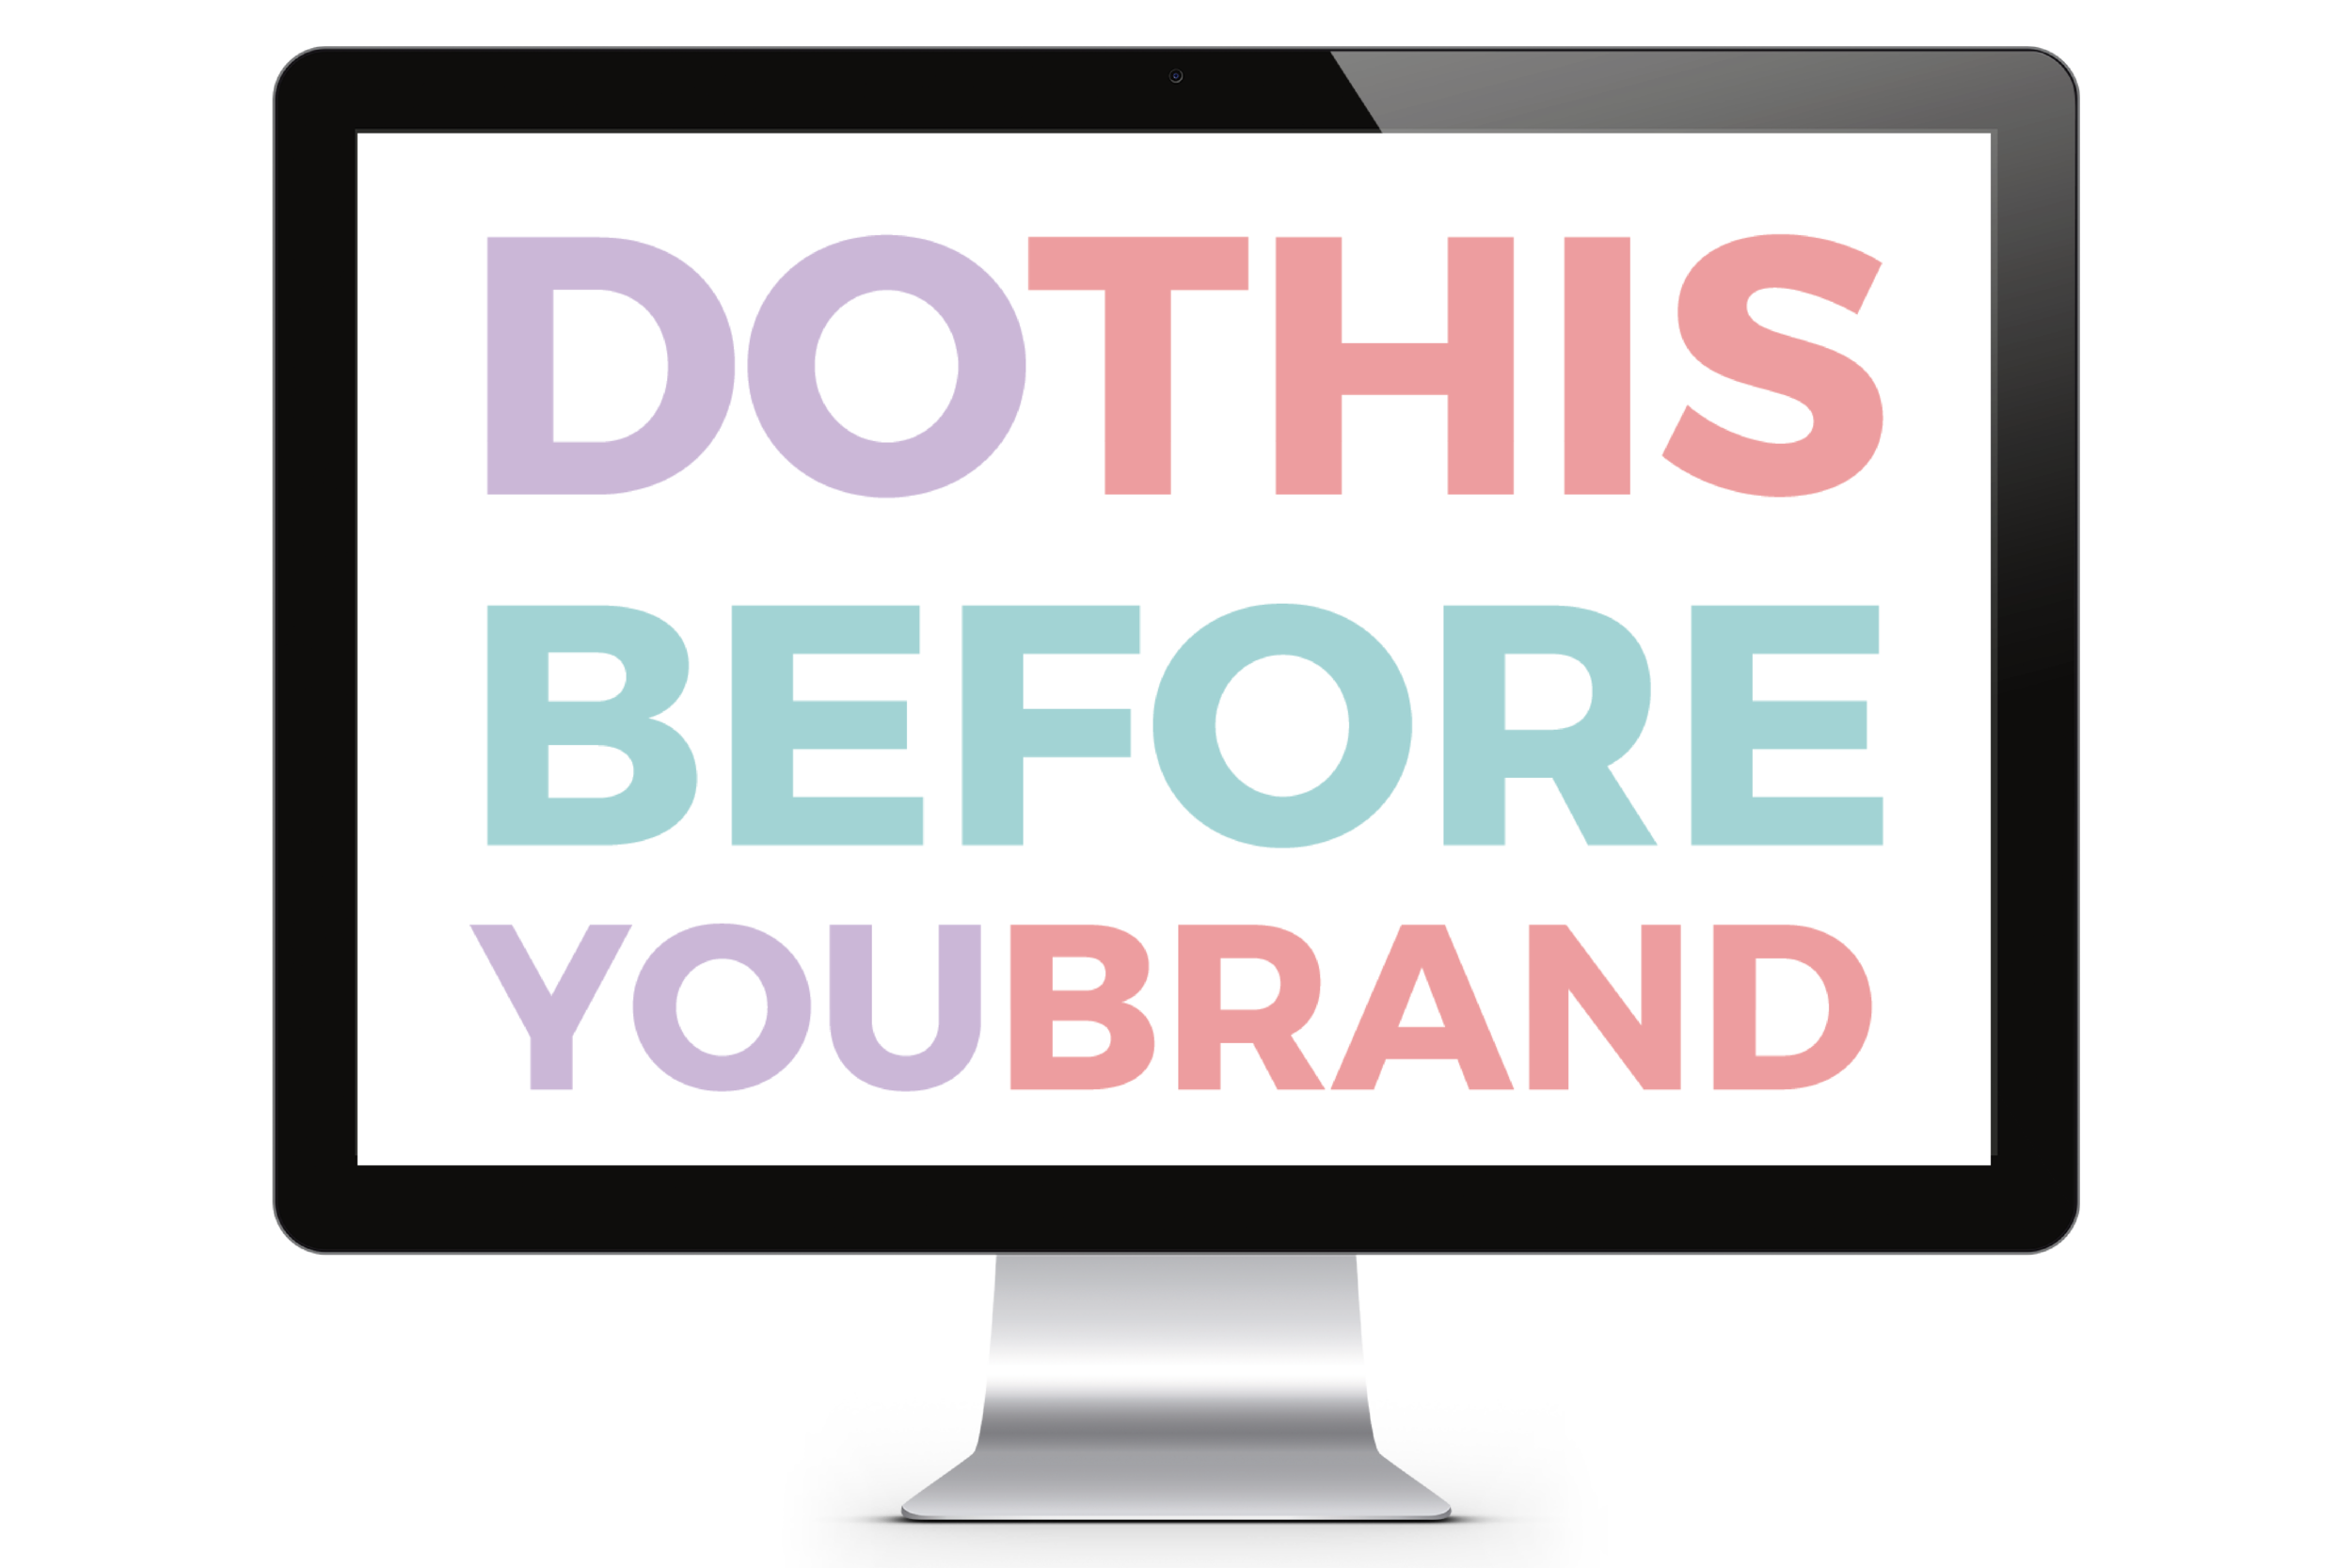 Do THIS Before You Brand | a Free Email Course from Yuri Gibson of viaYuri.com